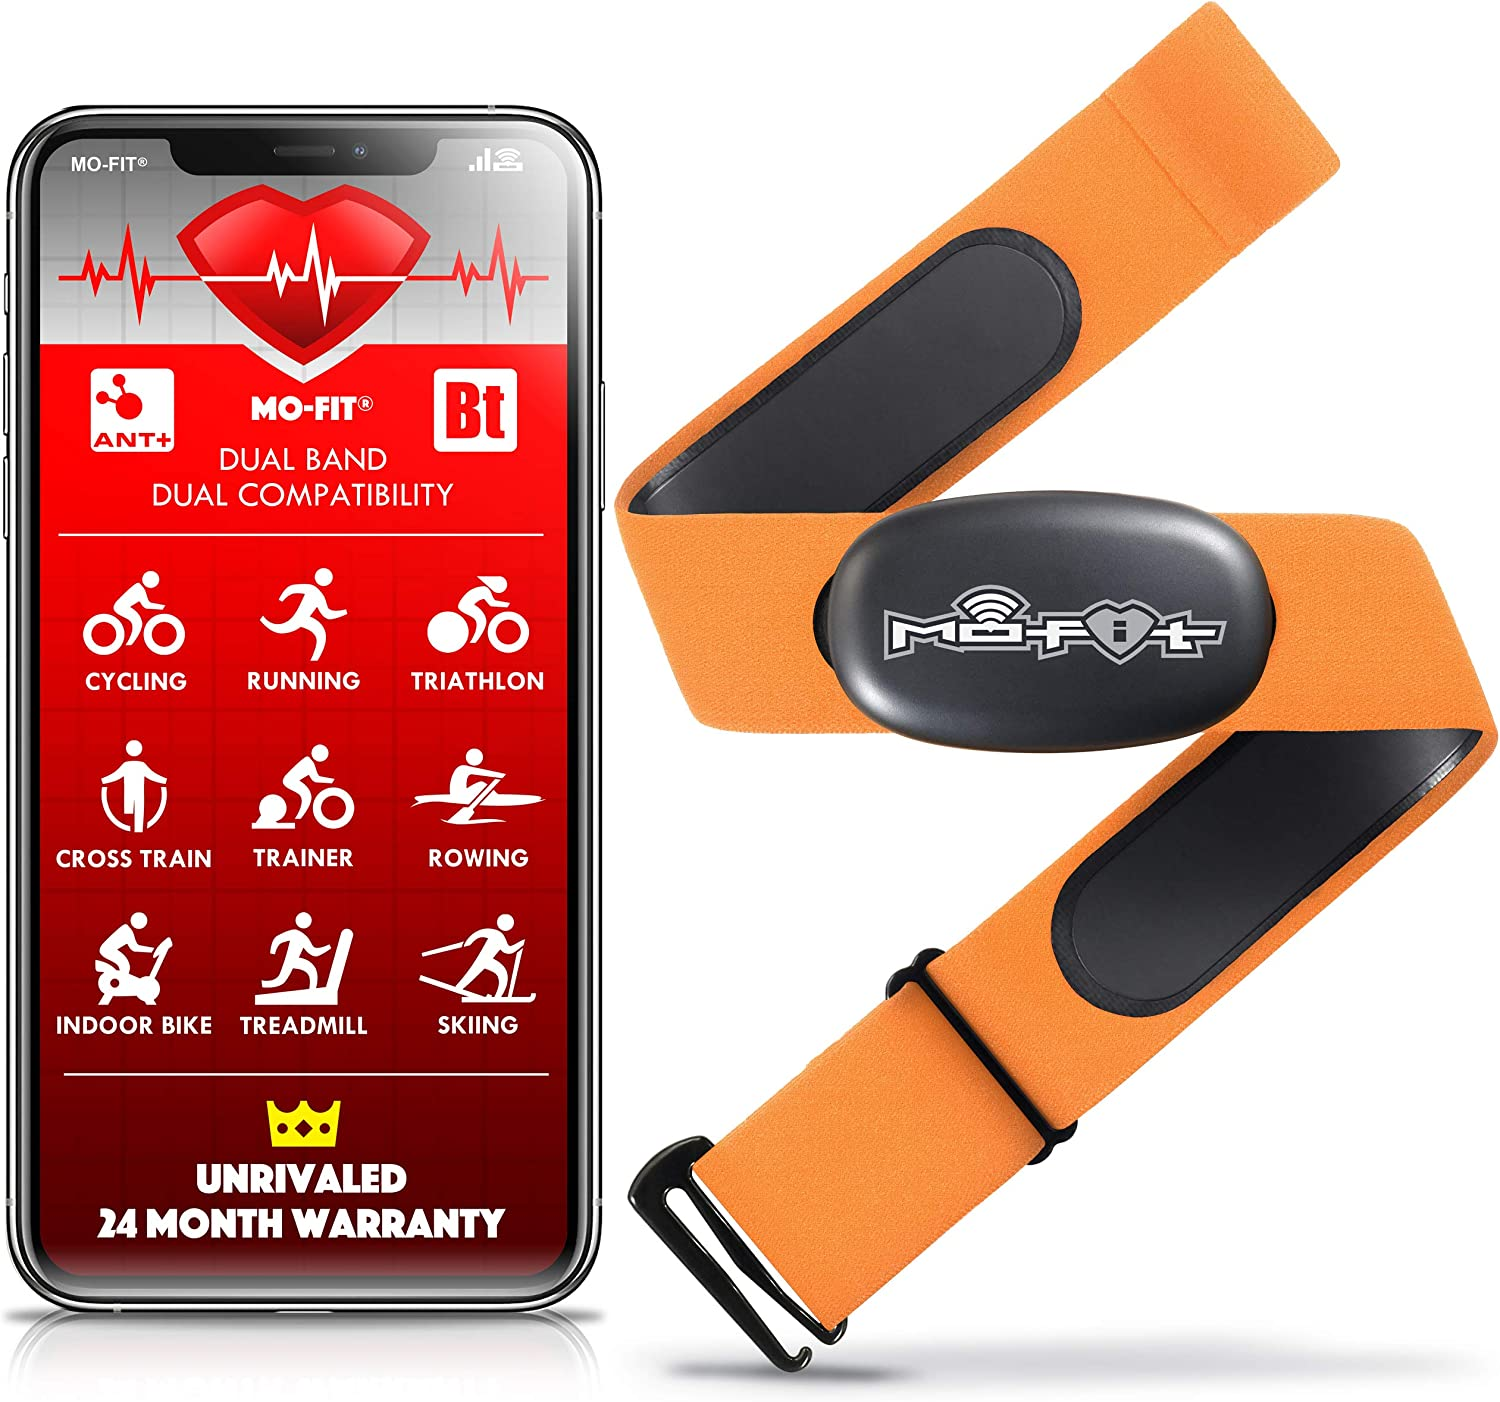 """Mo-Fit Heart Rate Monitor Chest Strap for Garmin, Apple, Android, Peloton, Zwift, ANT+ and Most Bluetooth 4.0 Enabled Fitness Devices (M-XXL: 26""""-39"""") Orange"""